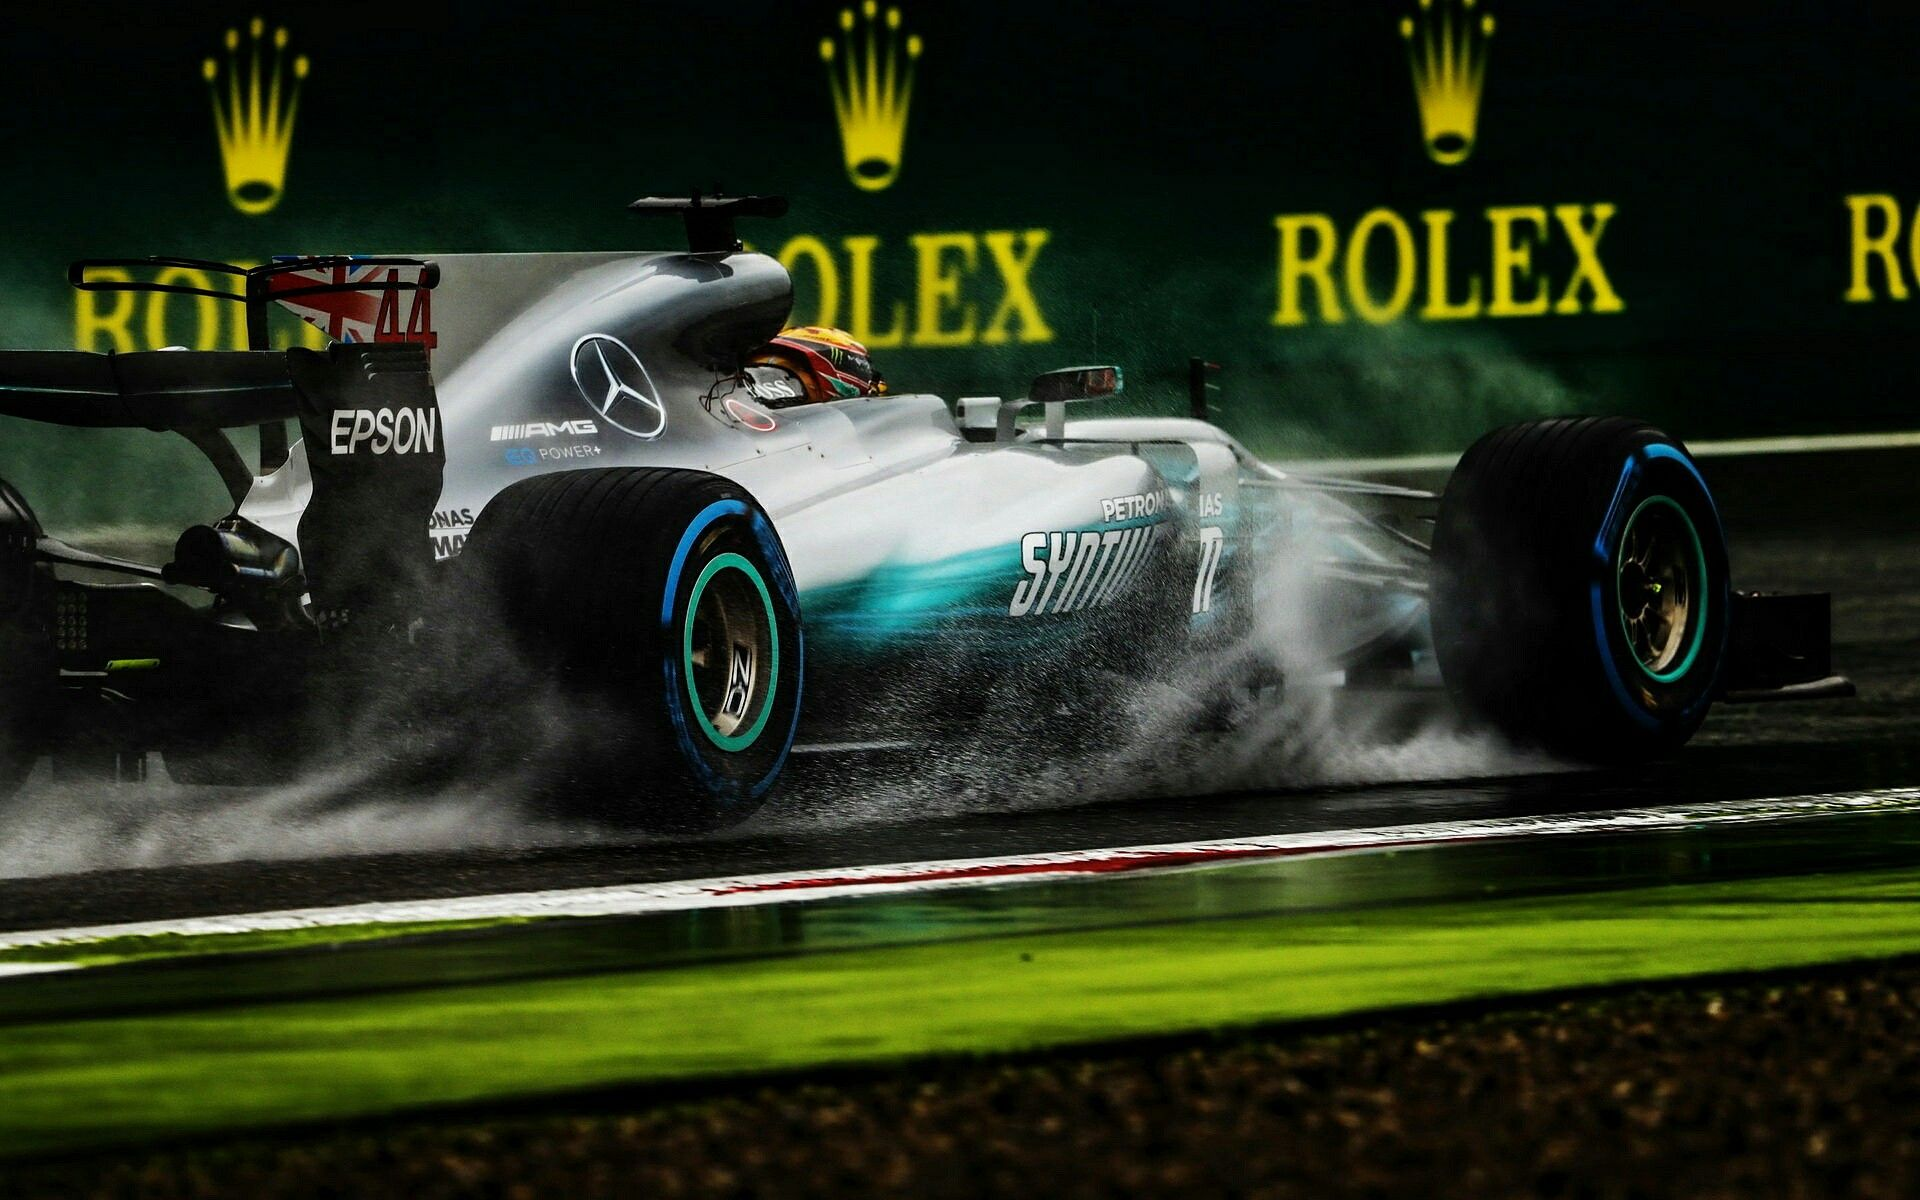 2017 Italian Gp Lewis Hamilton Mercedes Amg Printed Circuit Board Design Pcb Has Been Powering Through The Rain At Monza On His Way To A F1 Record 69th Pole Position